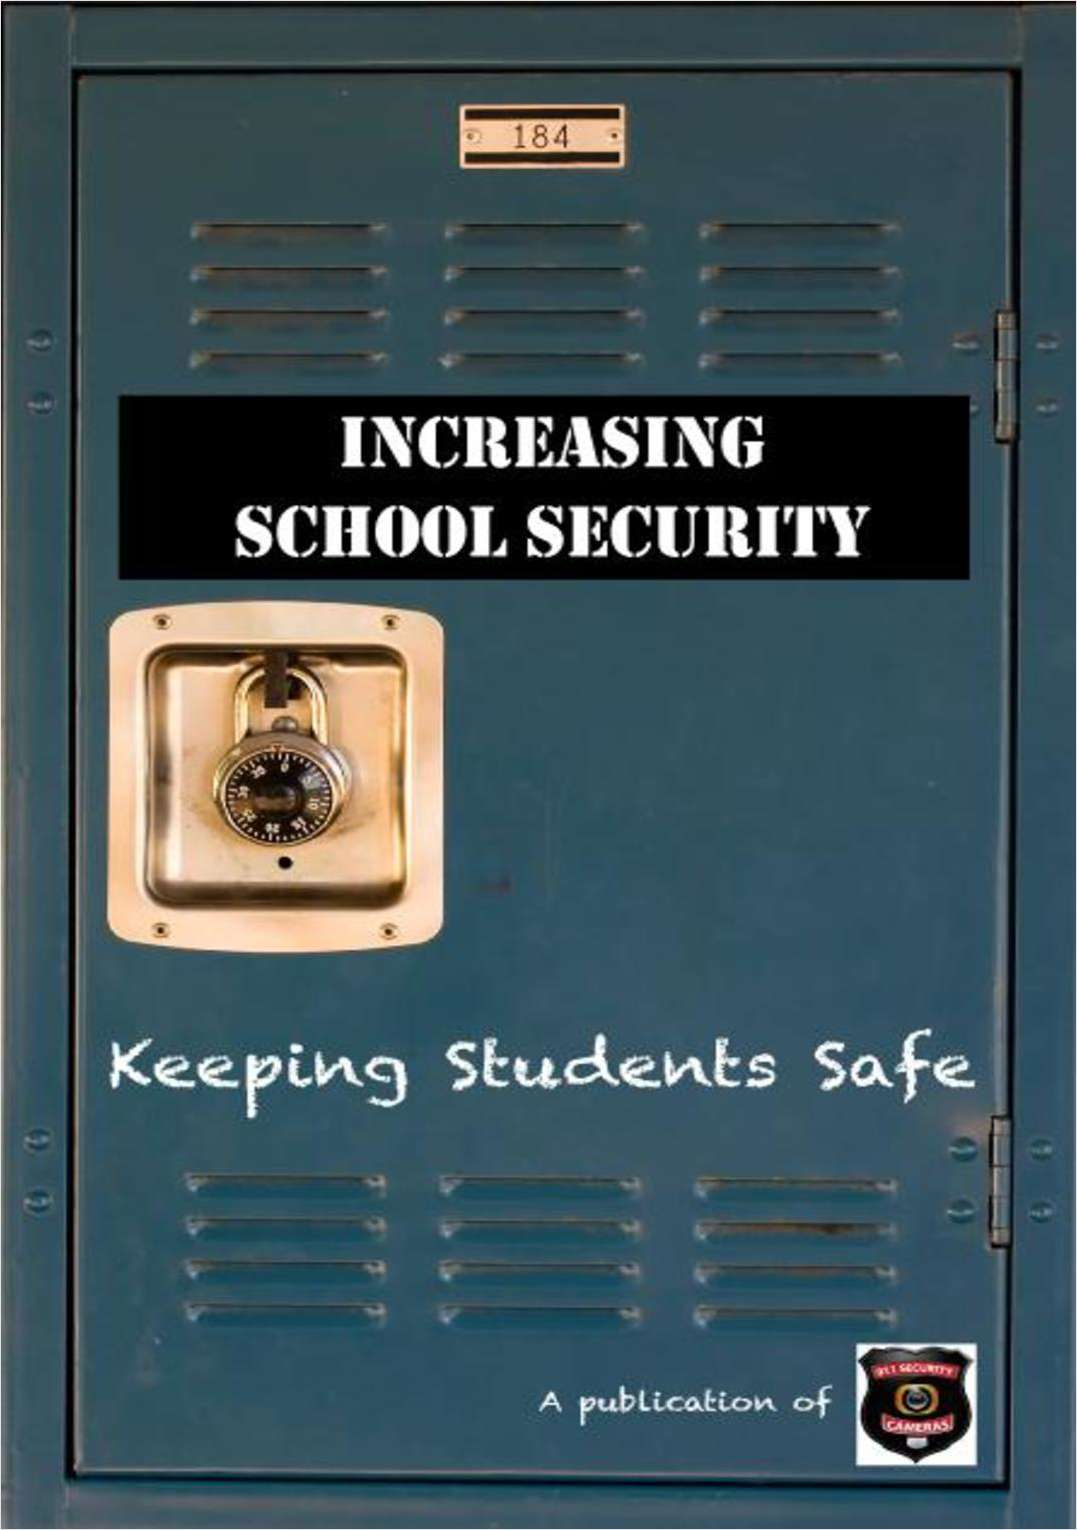 Increasing School Security and Keeping Students Safe